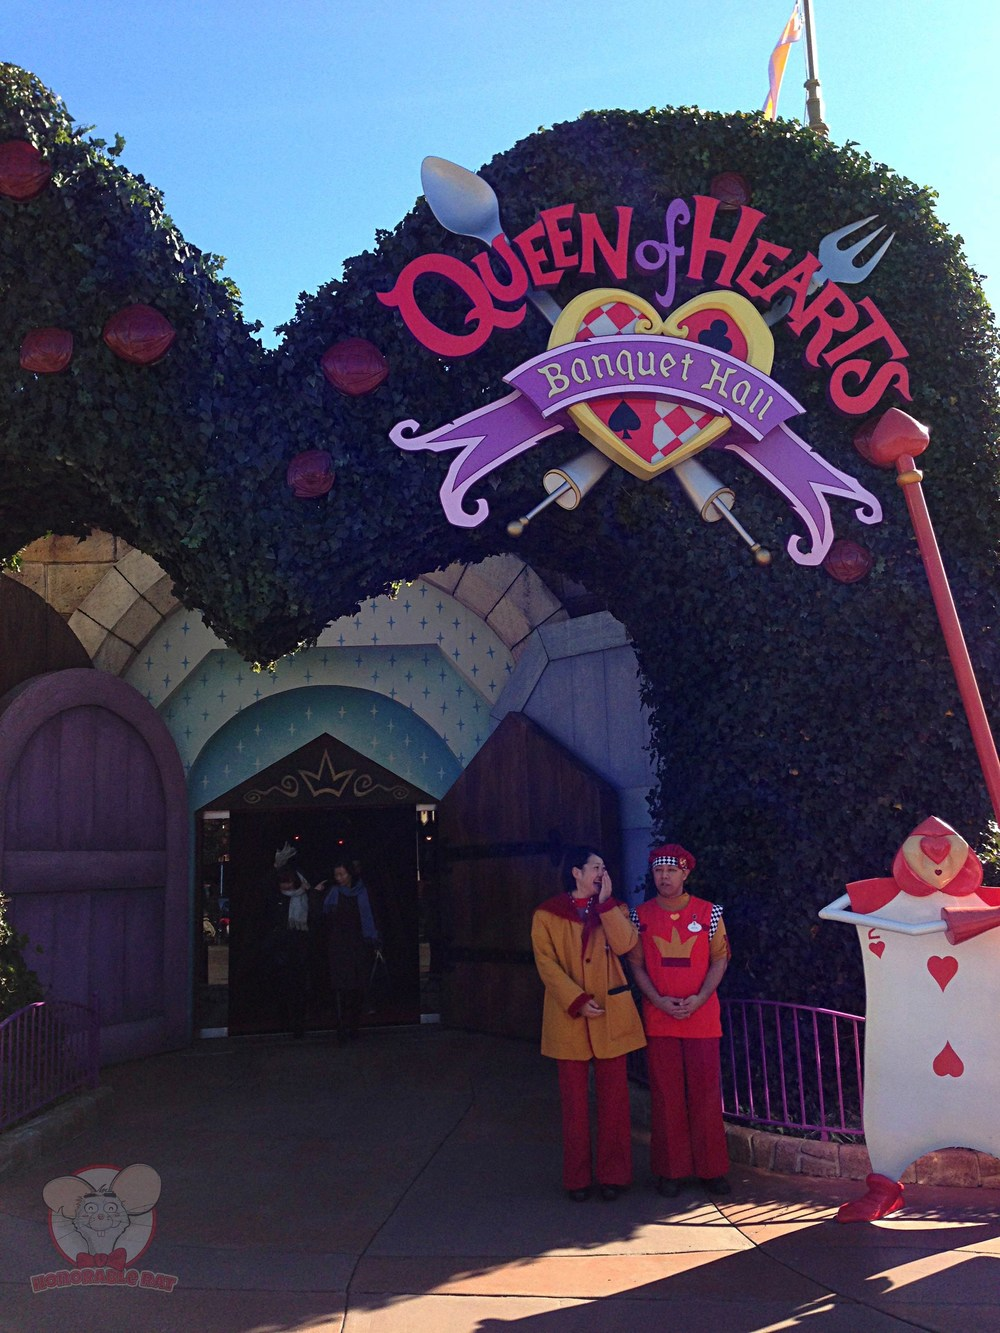 The main entrance to the Queen of Hearts Banquet Hall